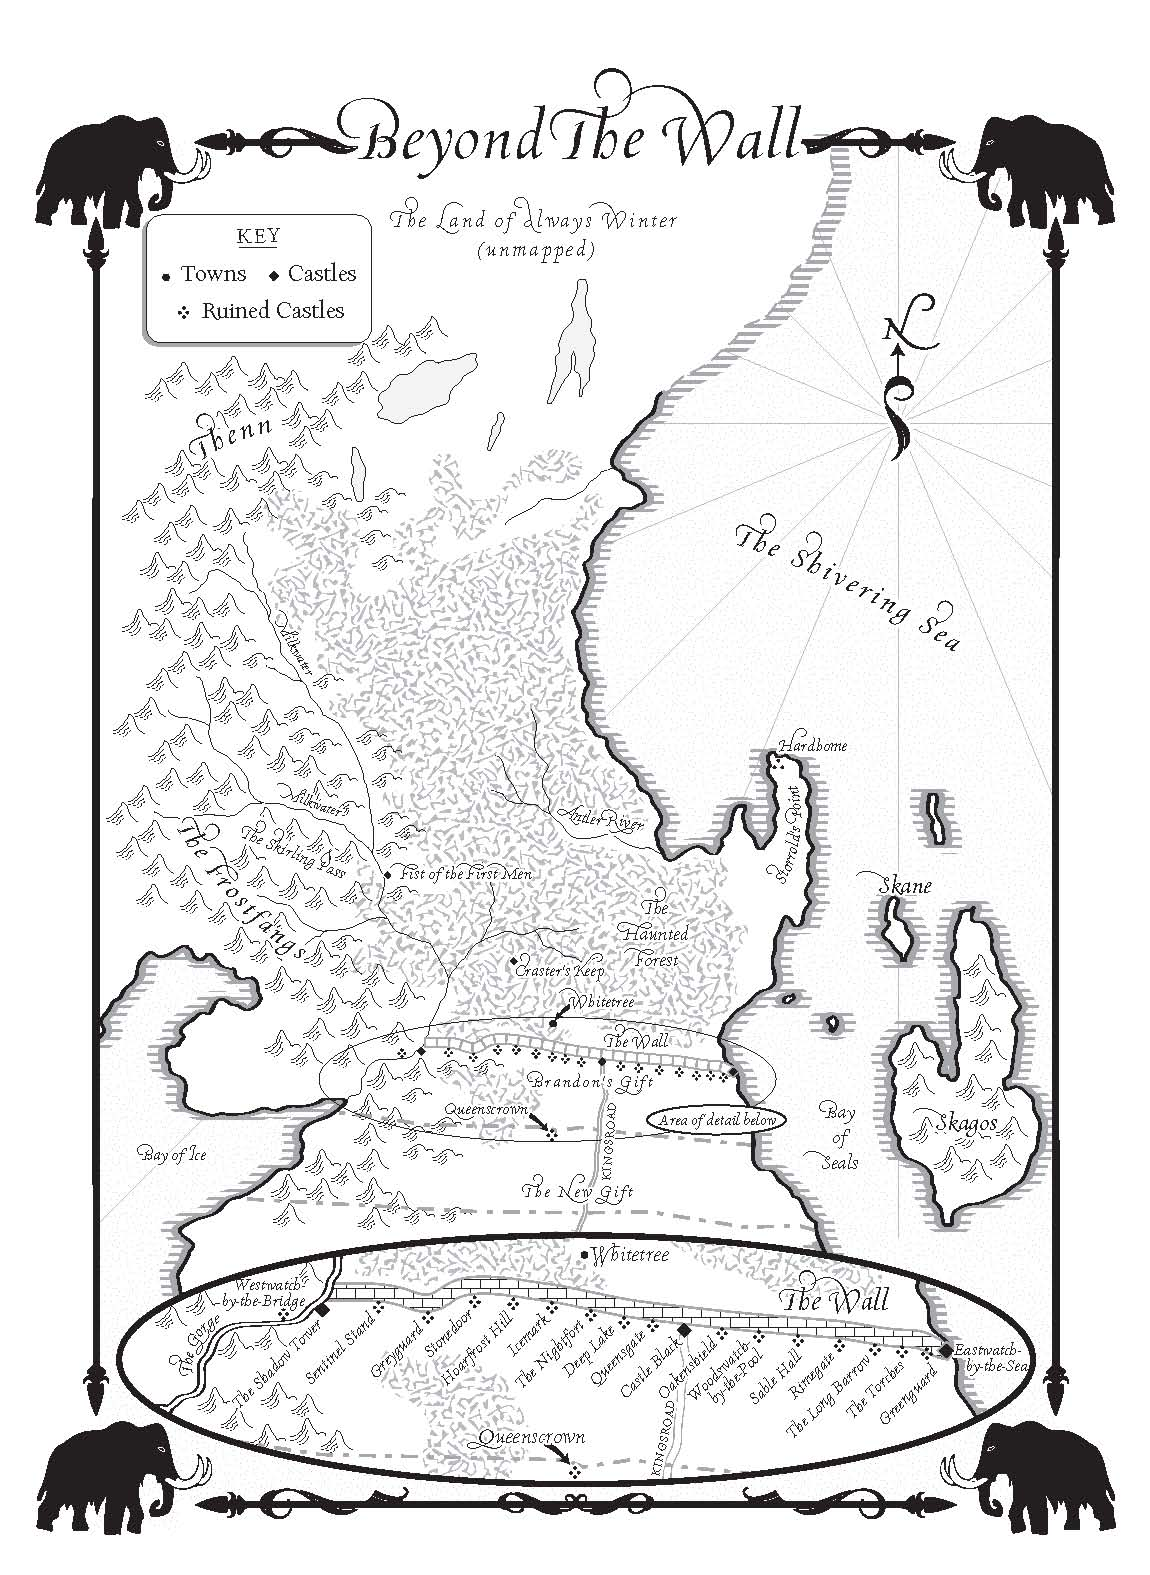 a dance with dragons-map of beyond the wall